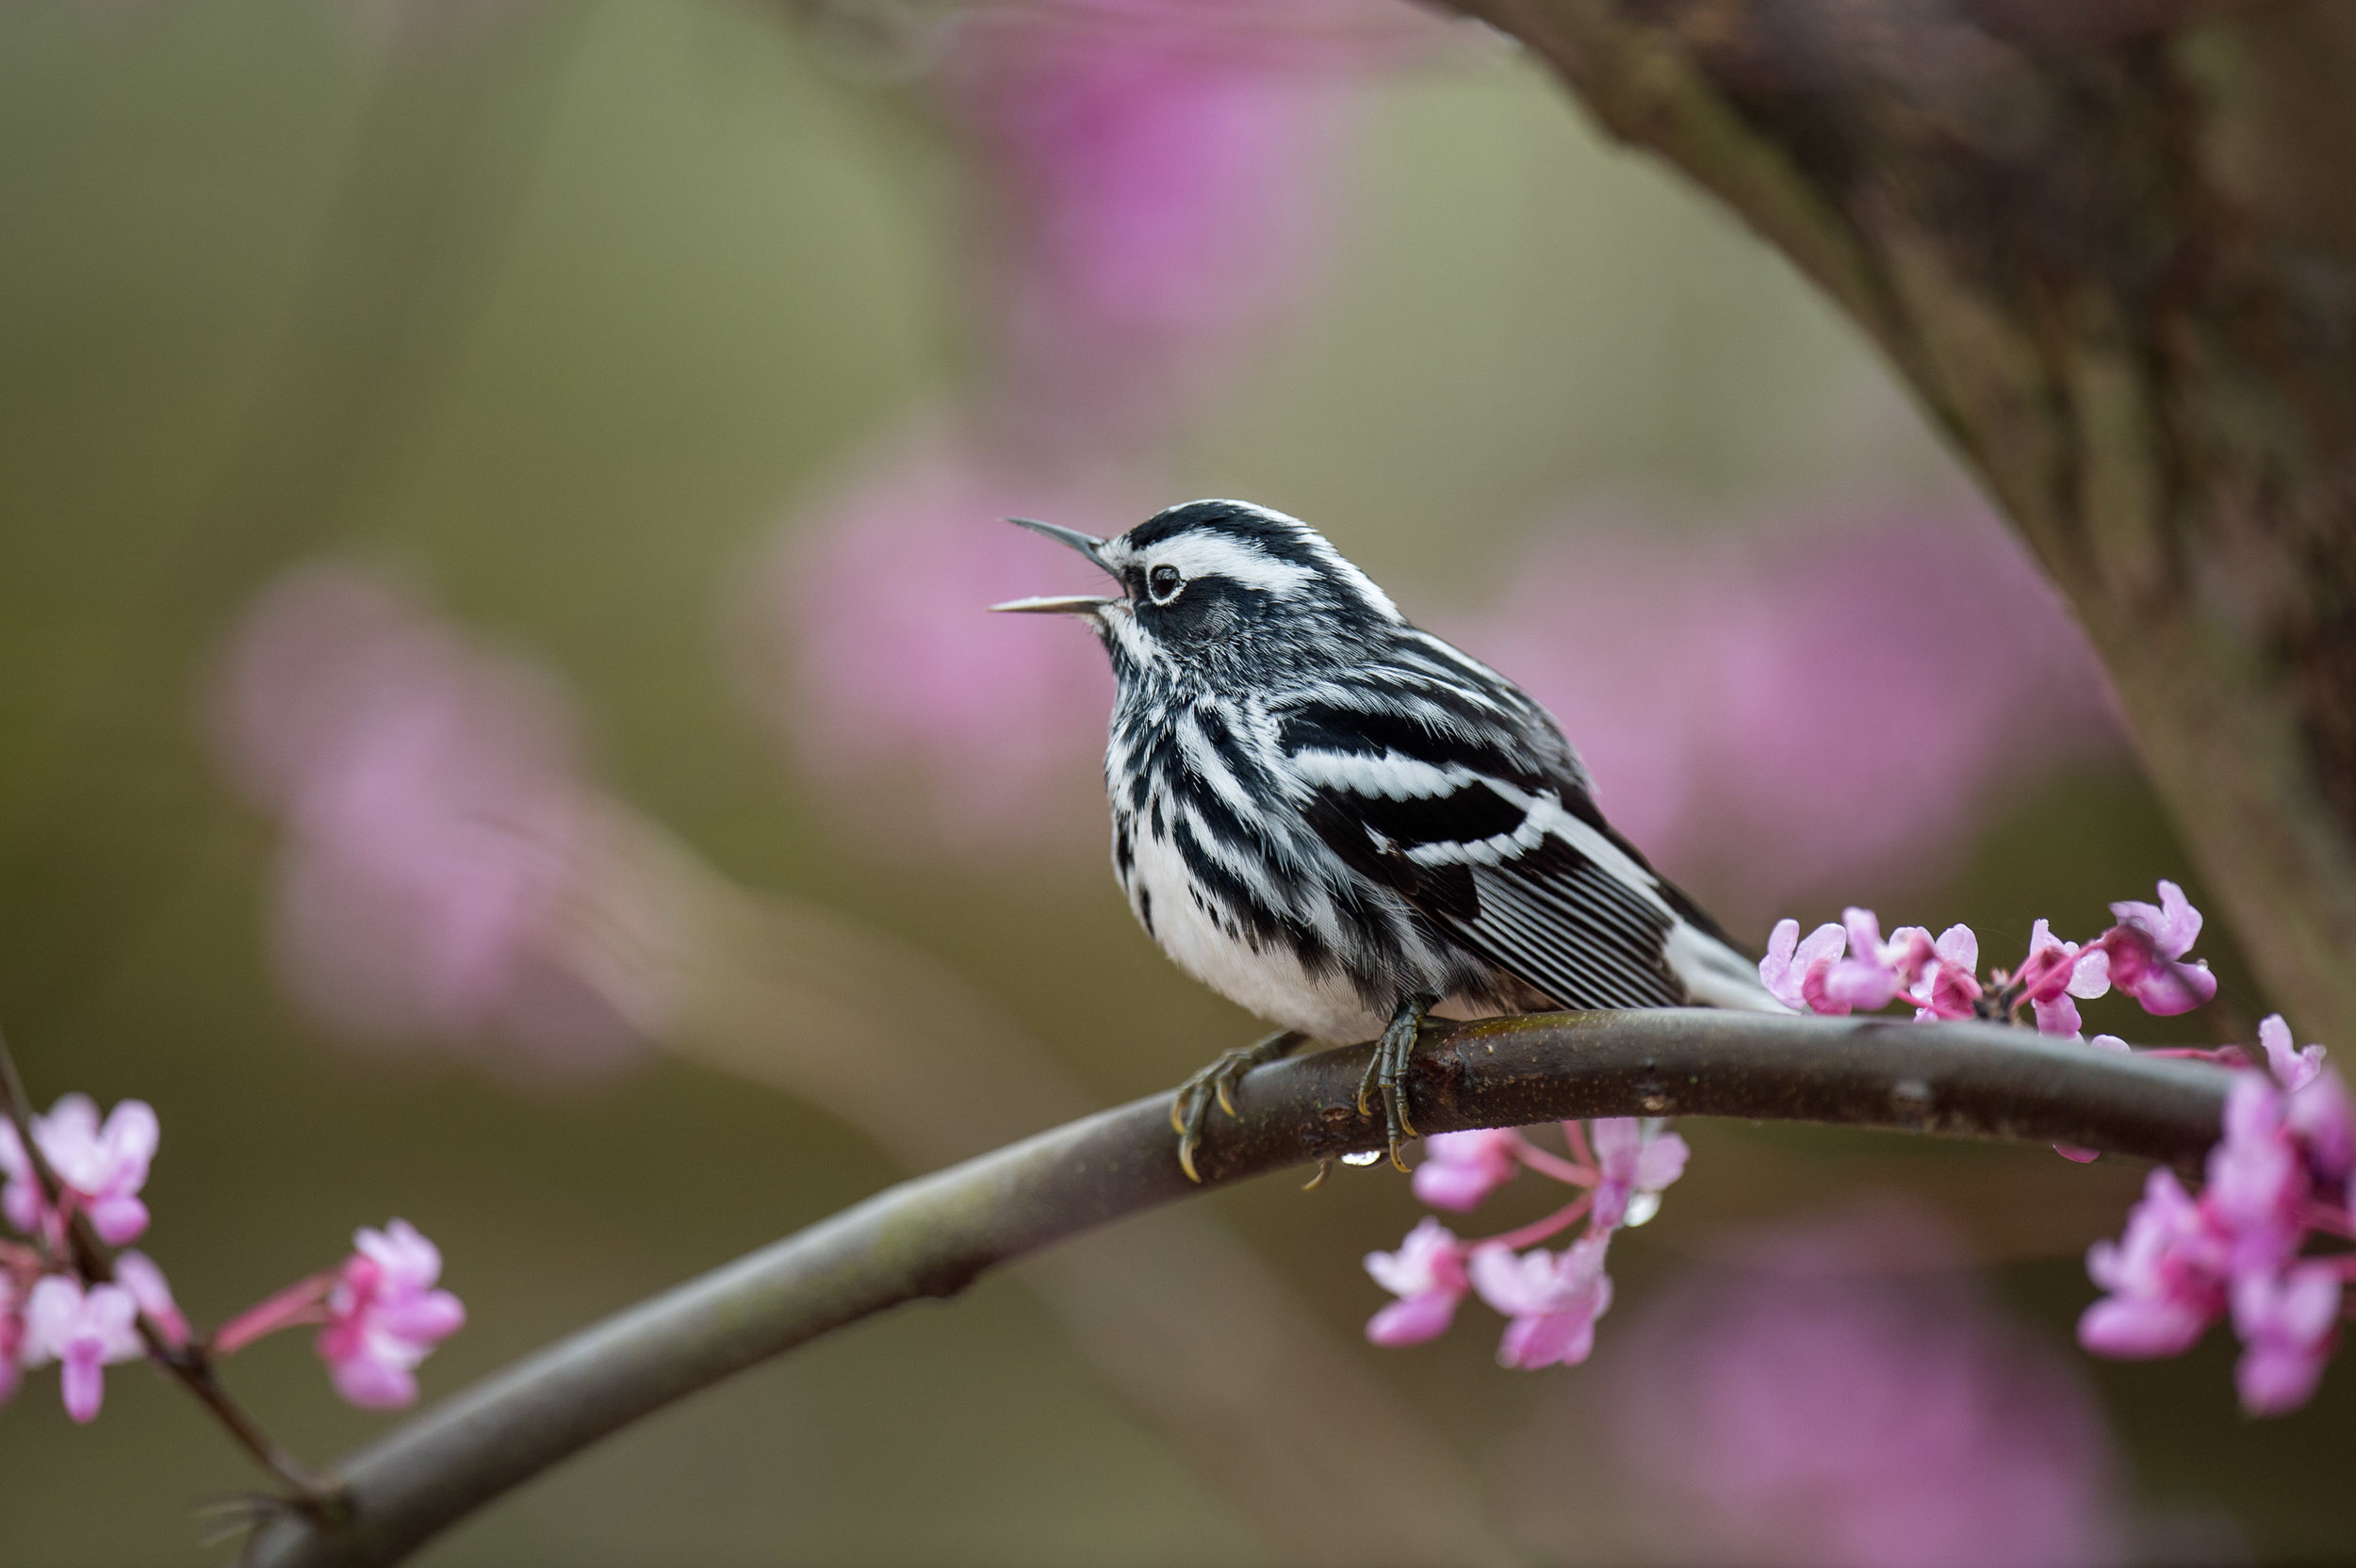 A Black and White Warlber sings its heart out perched on the branch of a Redbud tree full of purple blossoms.